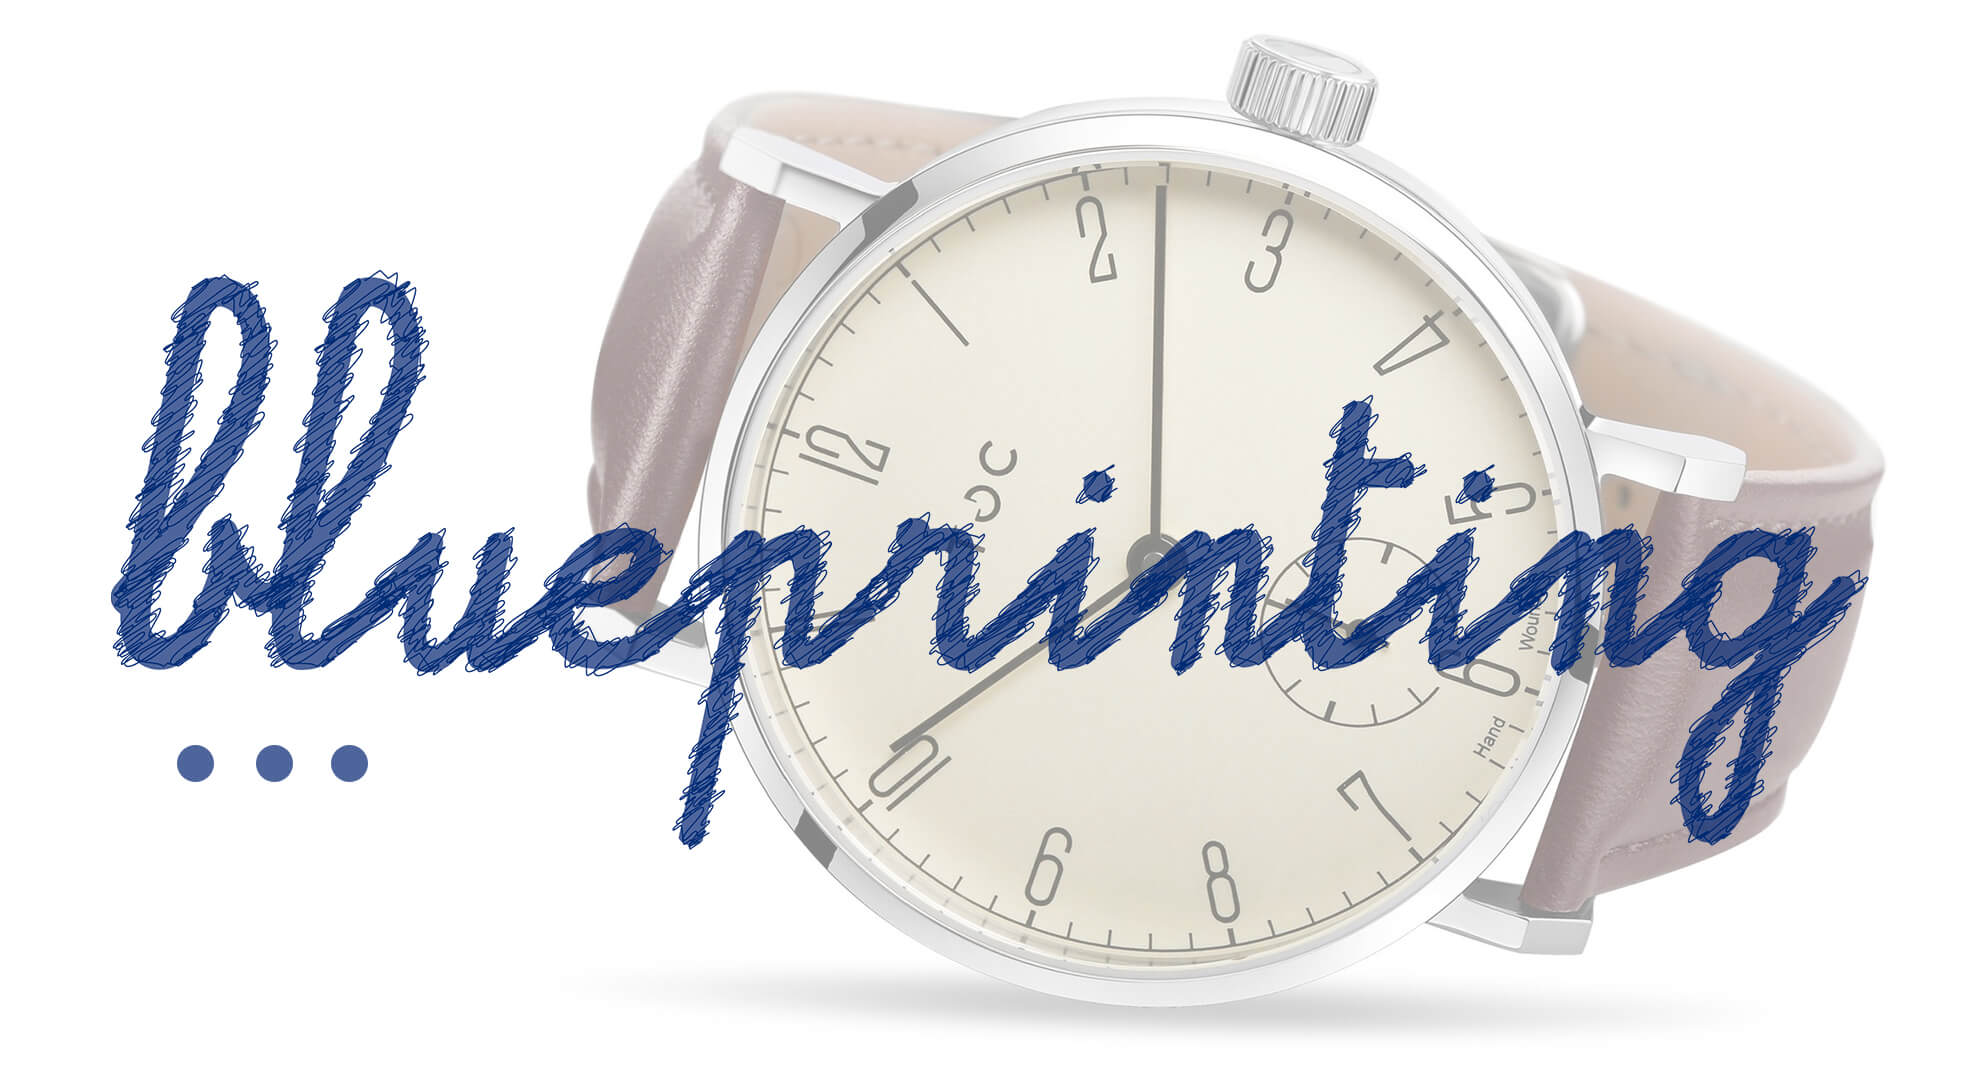 Blueprinting: Building a Micro-Brand Watch